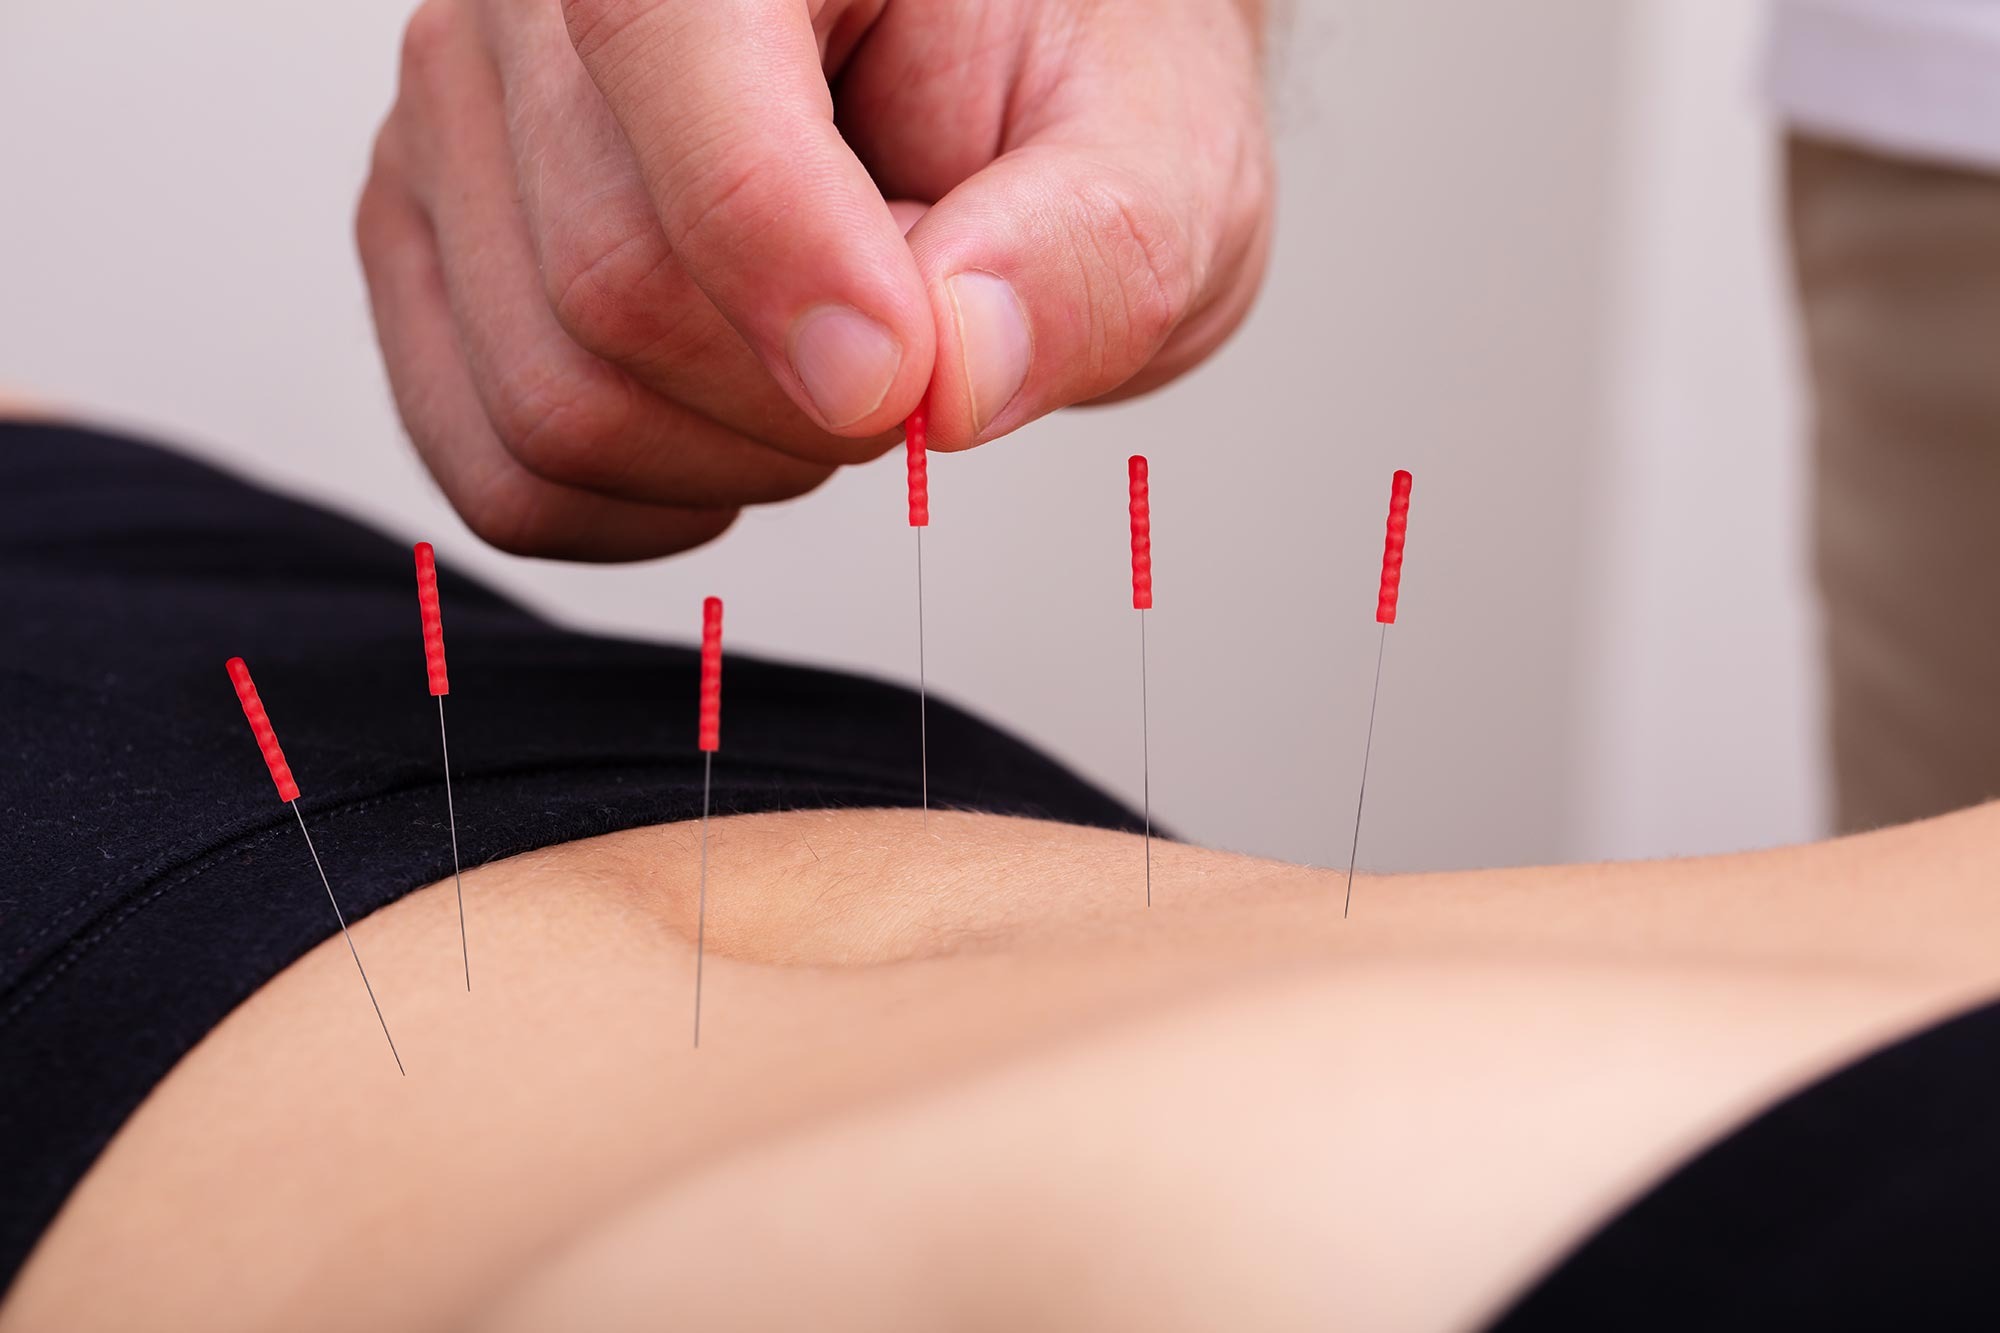 West Palm Beach Acupuncturist